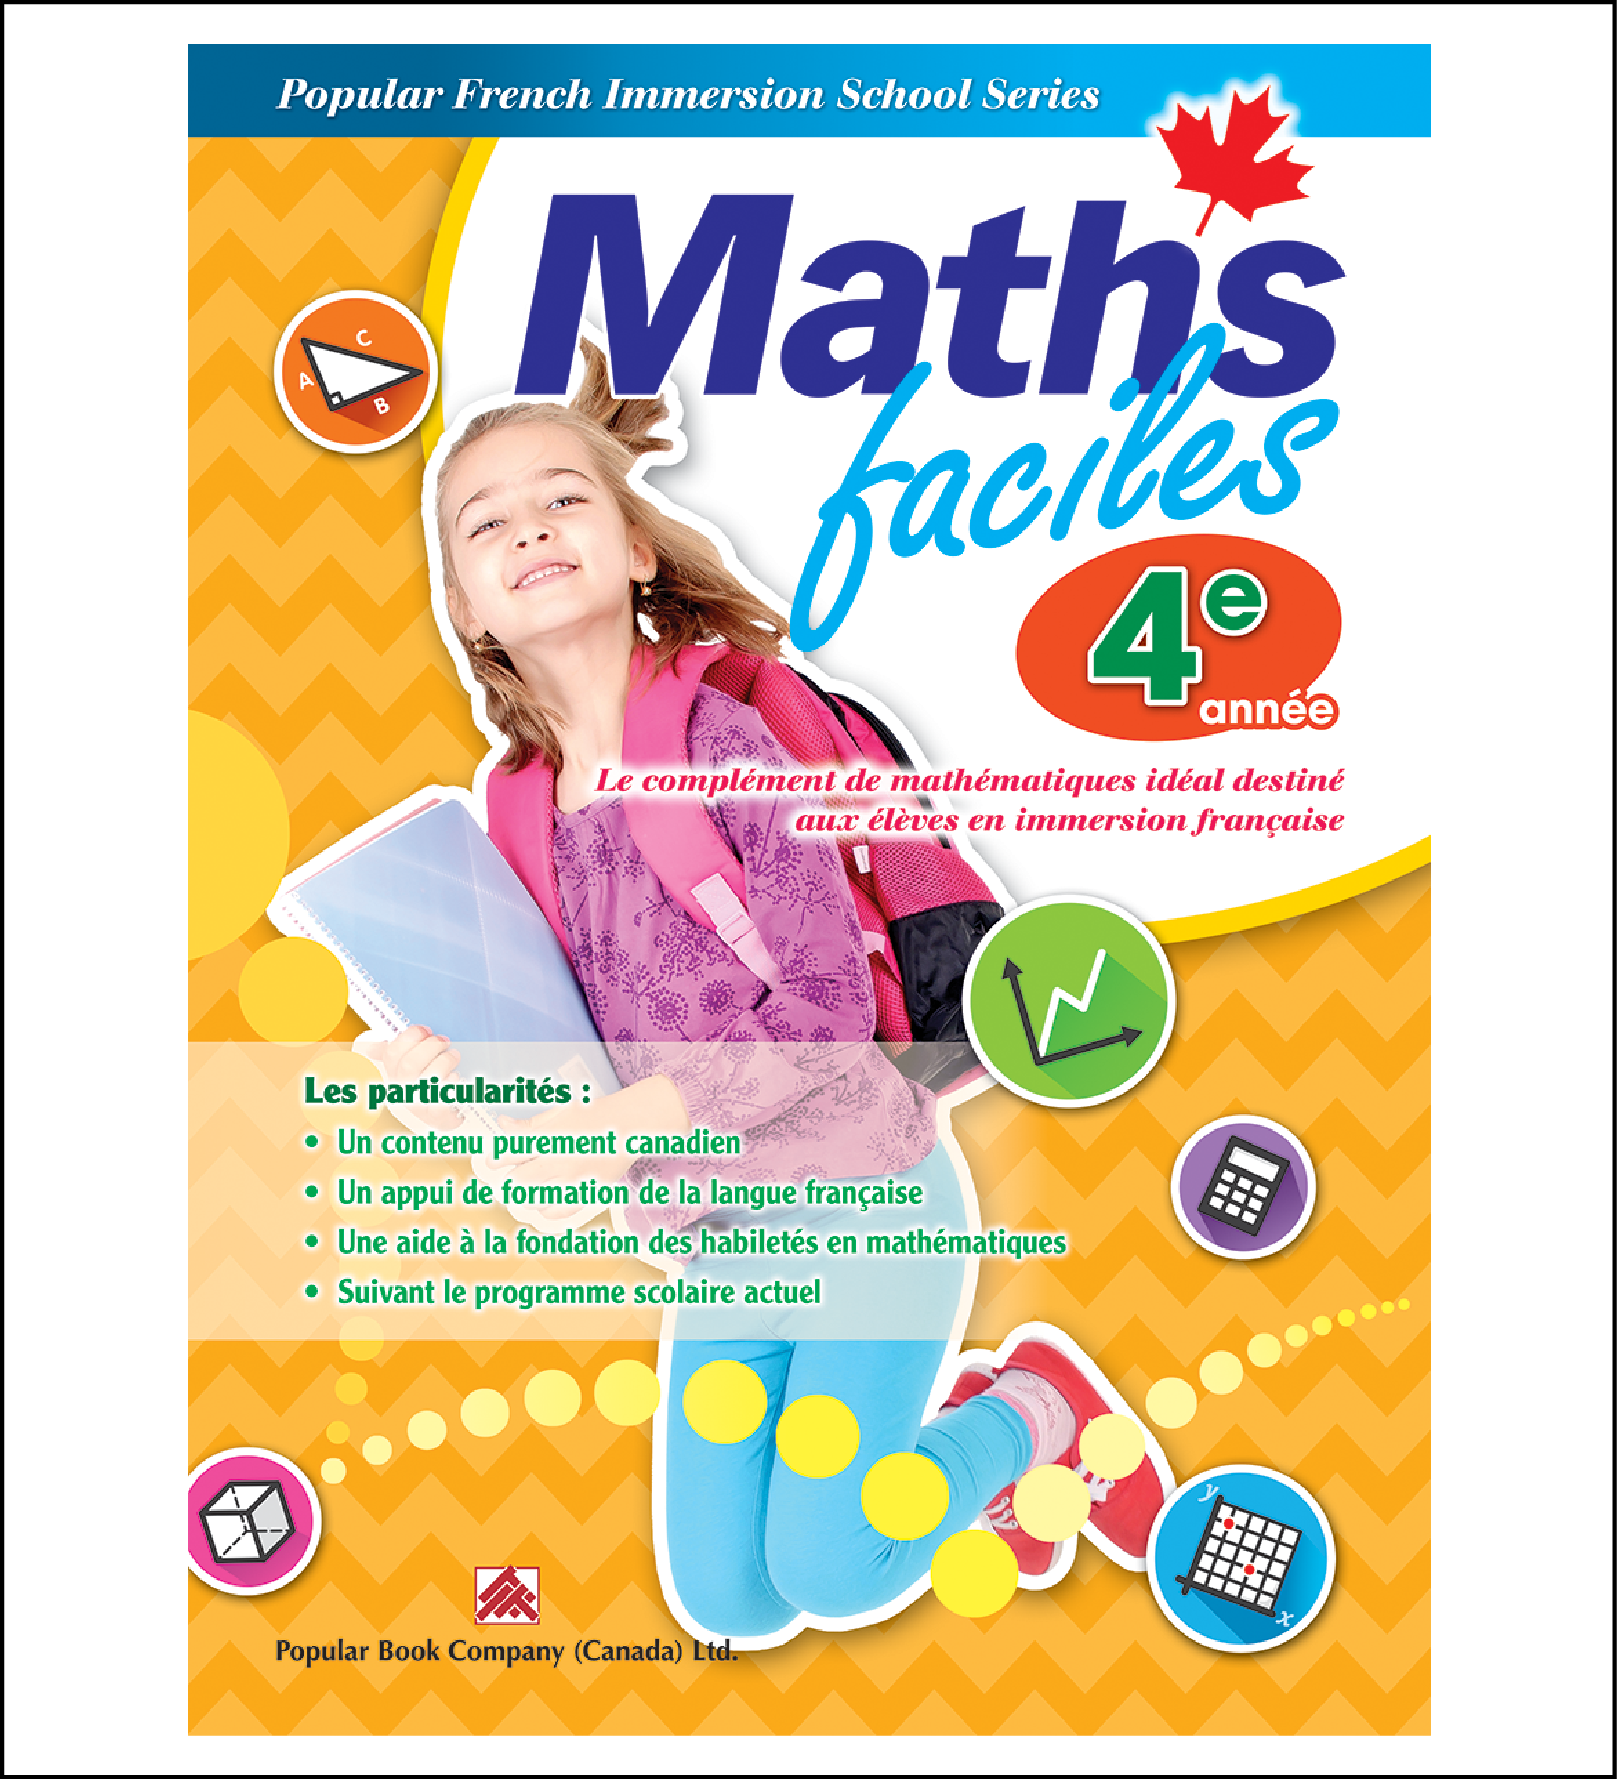 Canadian Curriculum Workbook for French Immersion School Maths faciles grade 4